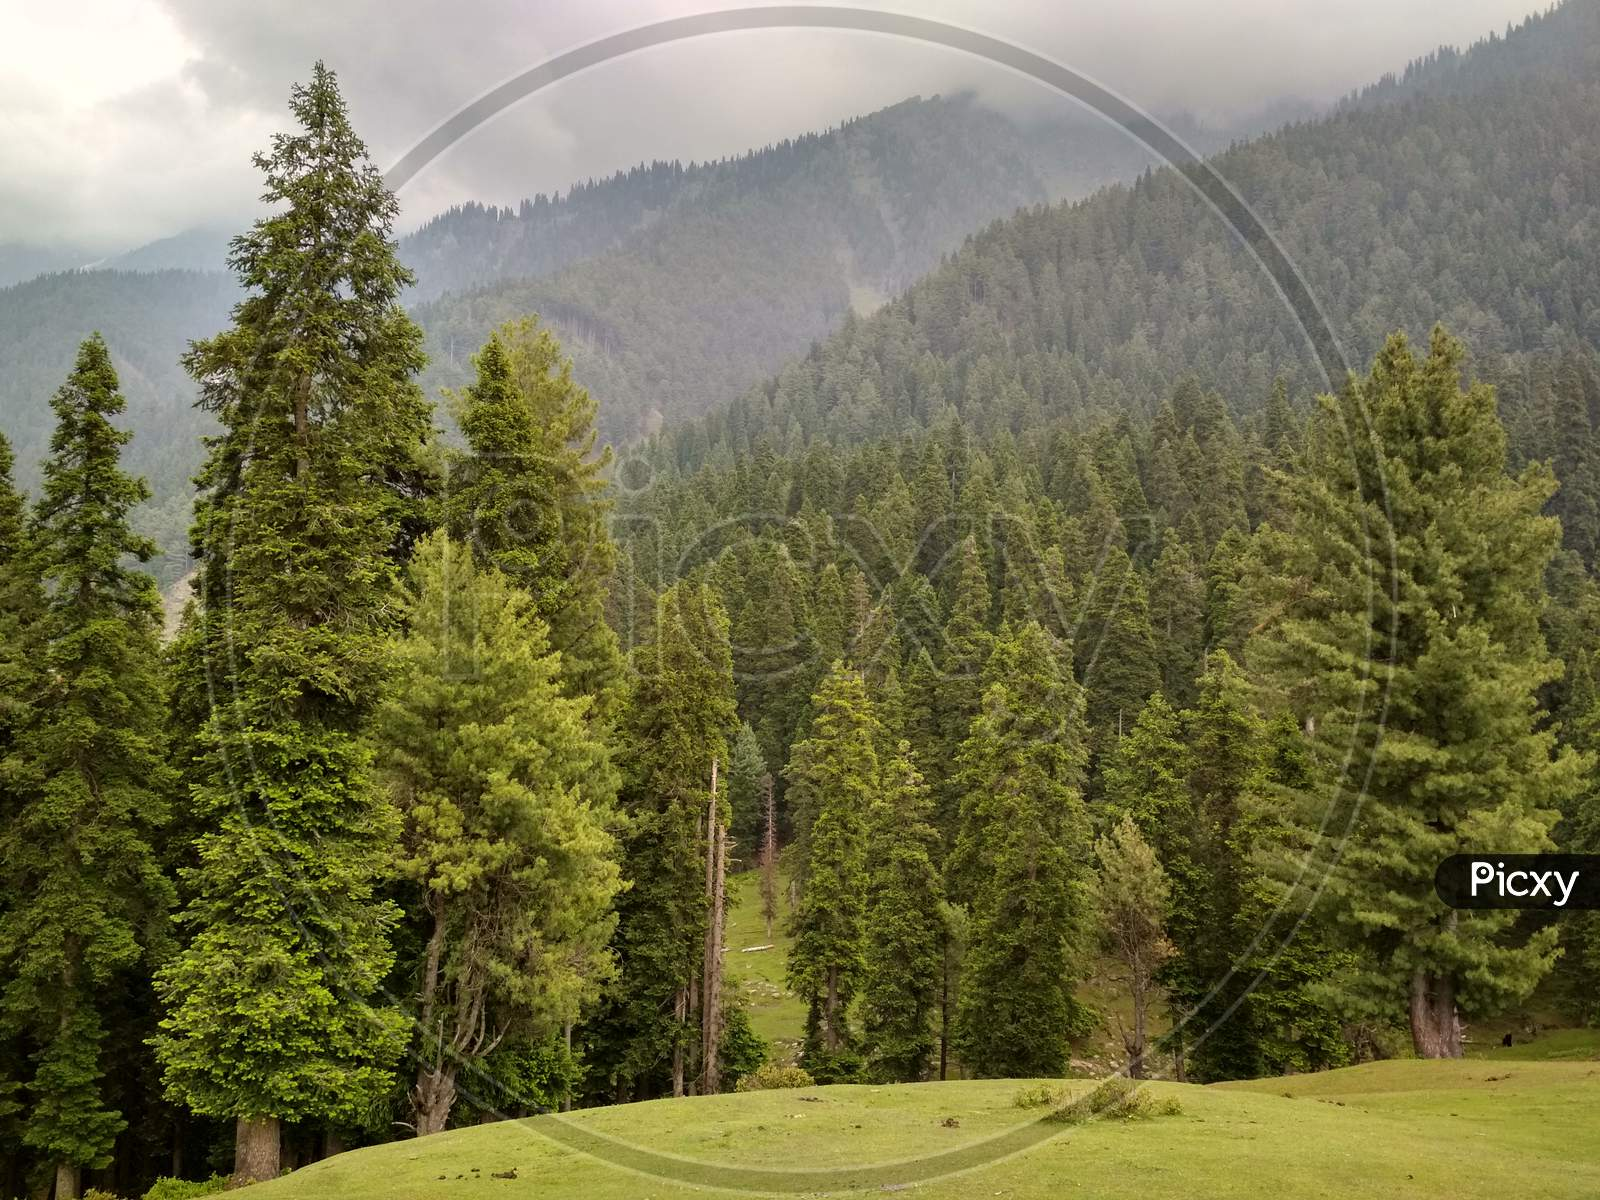 A Beautiful and peaceful view of deenu valley